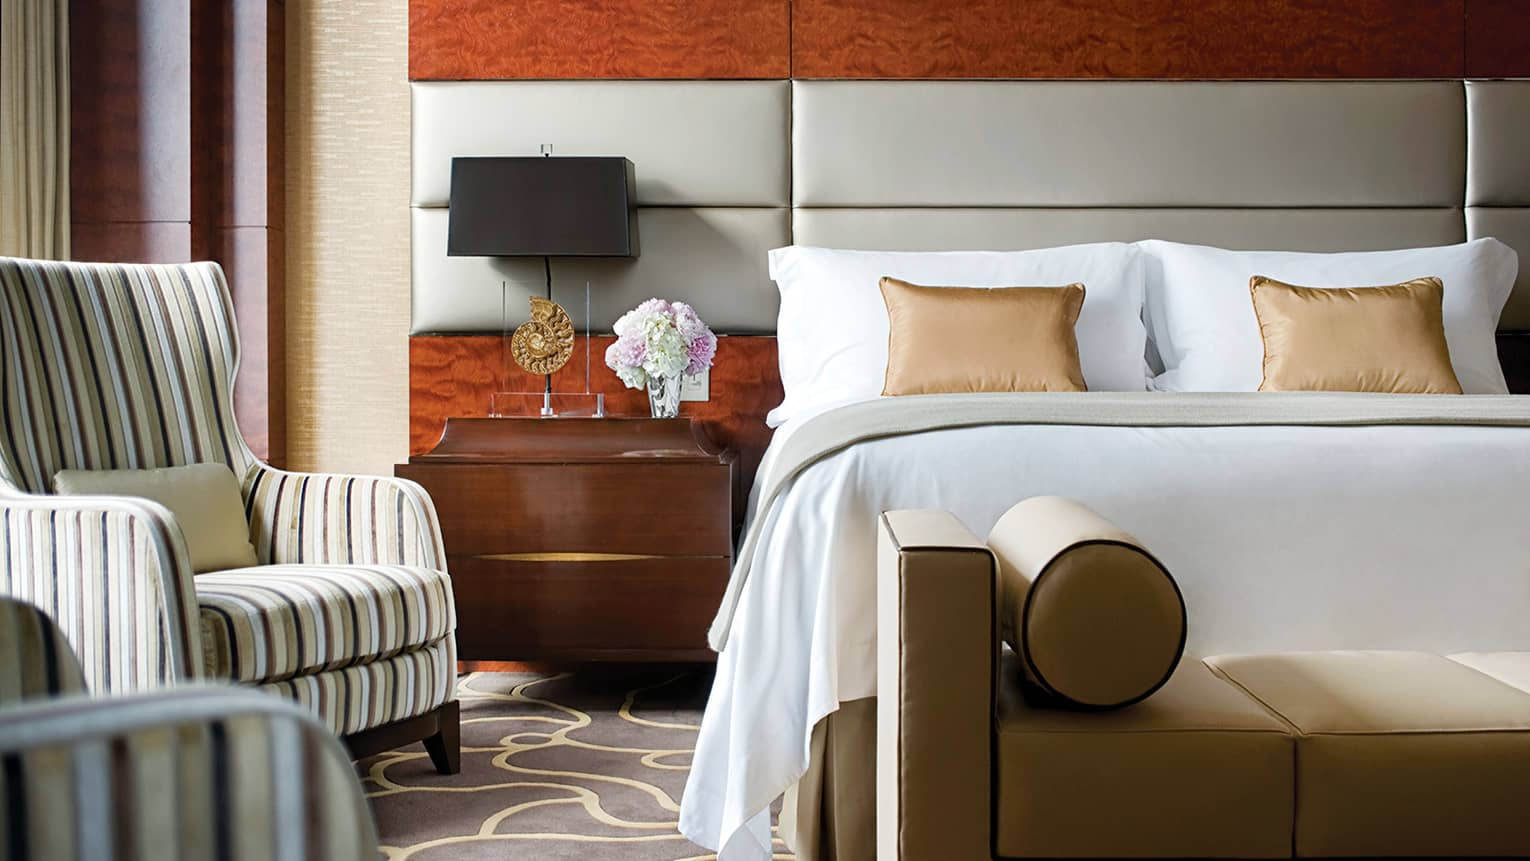 Two-bedroom Presidential Suite modern leather chaise at foot of bed, striped armchair by window